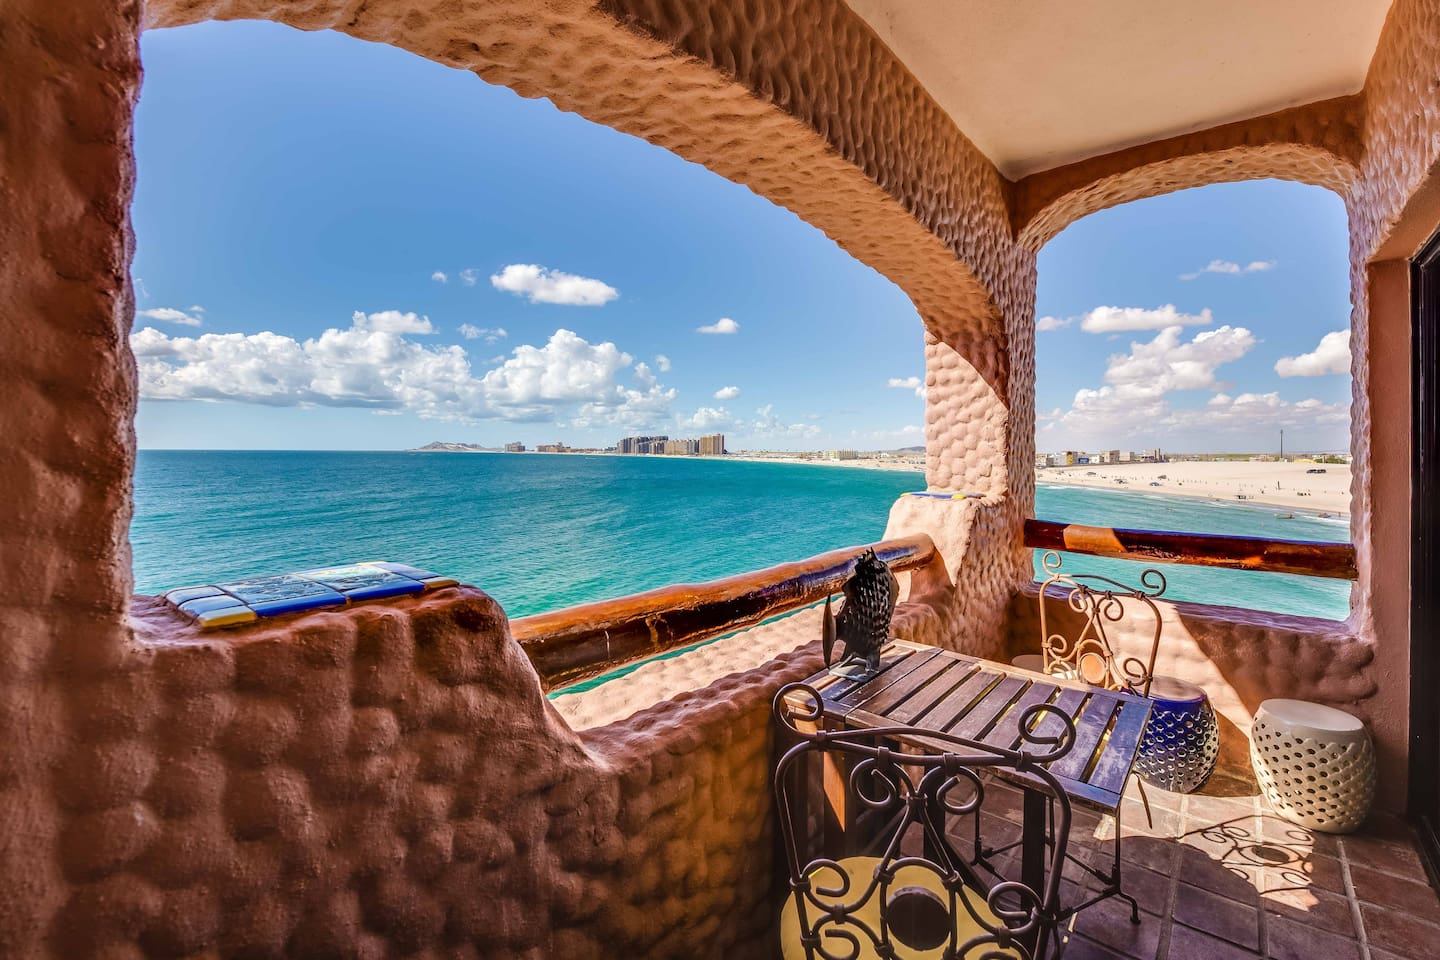 Stunning Views of the Sea & Sandy Beach - Welcome To Your Beachfront Penthouse Vacation!